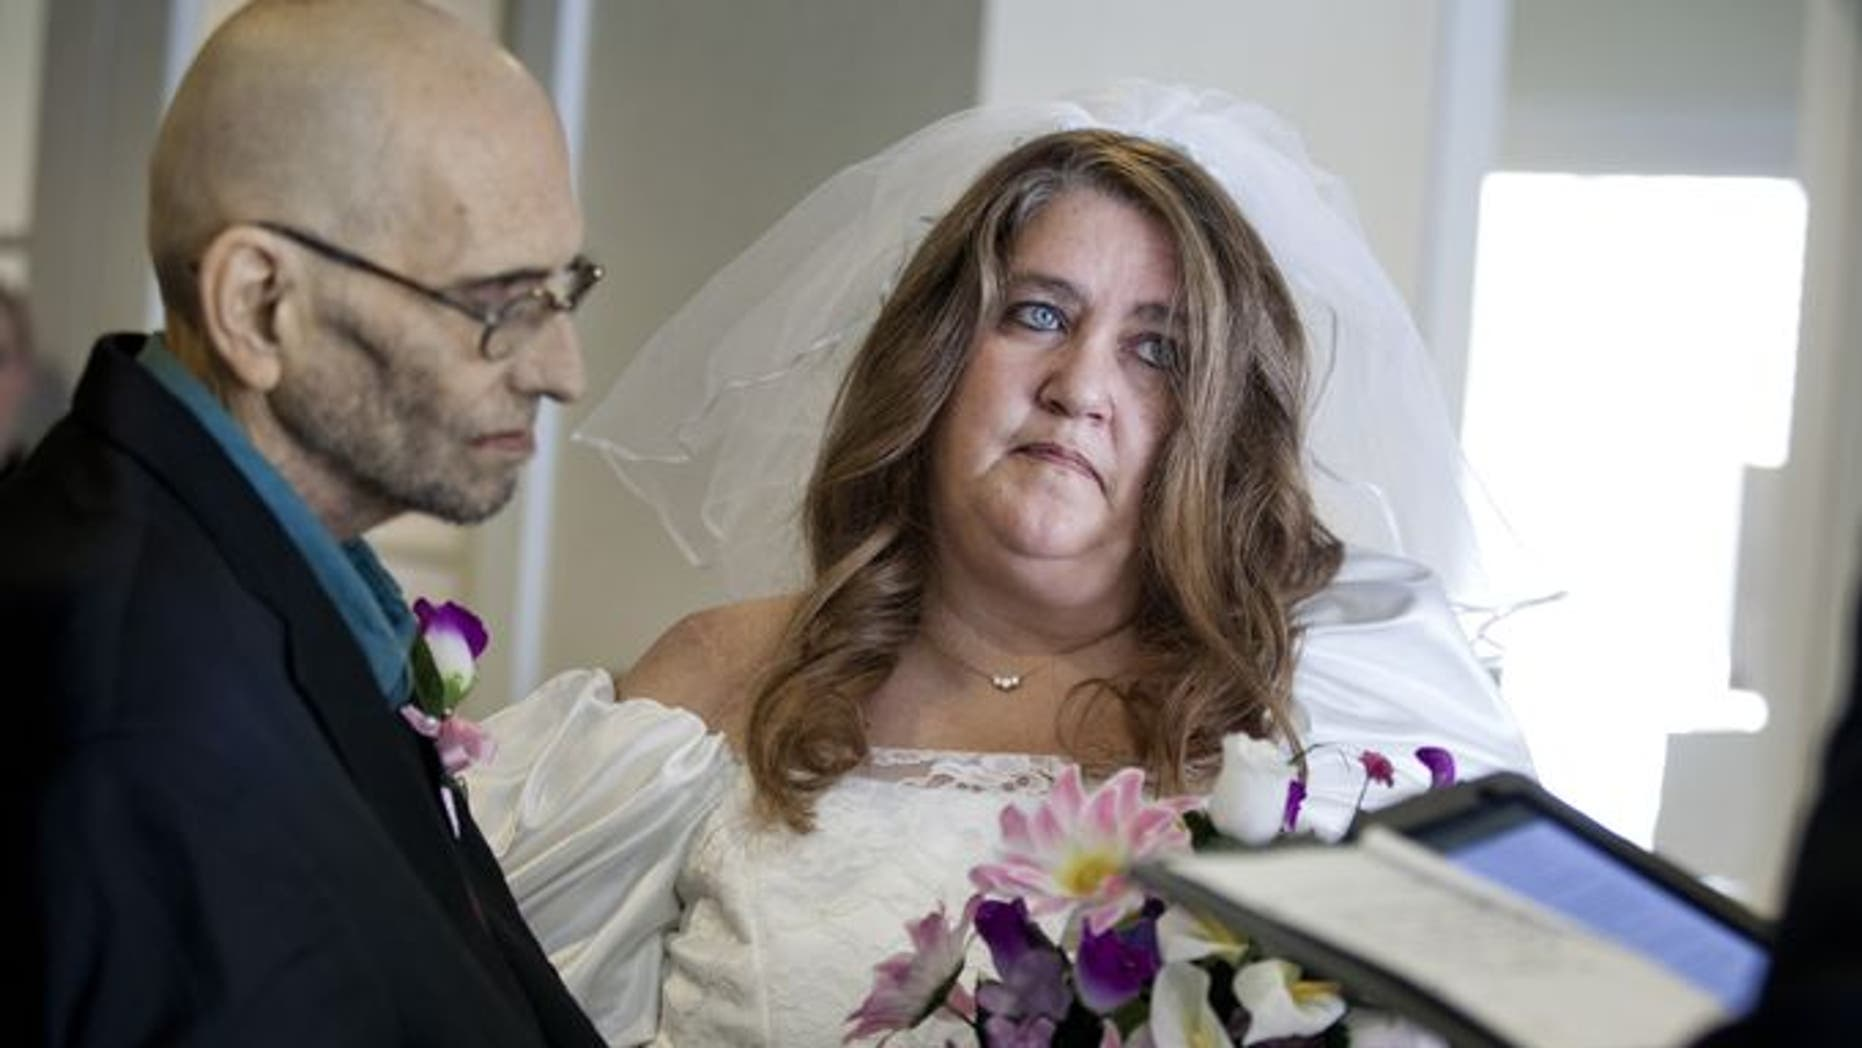 Daniel Robertson marries Leeanna at Blue Water Hospice Home.